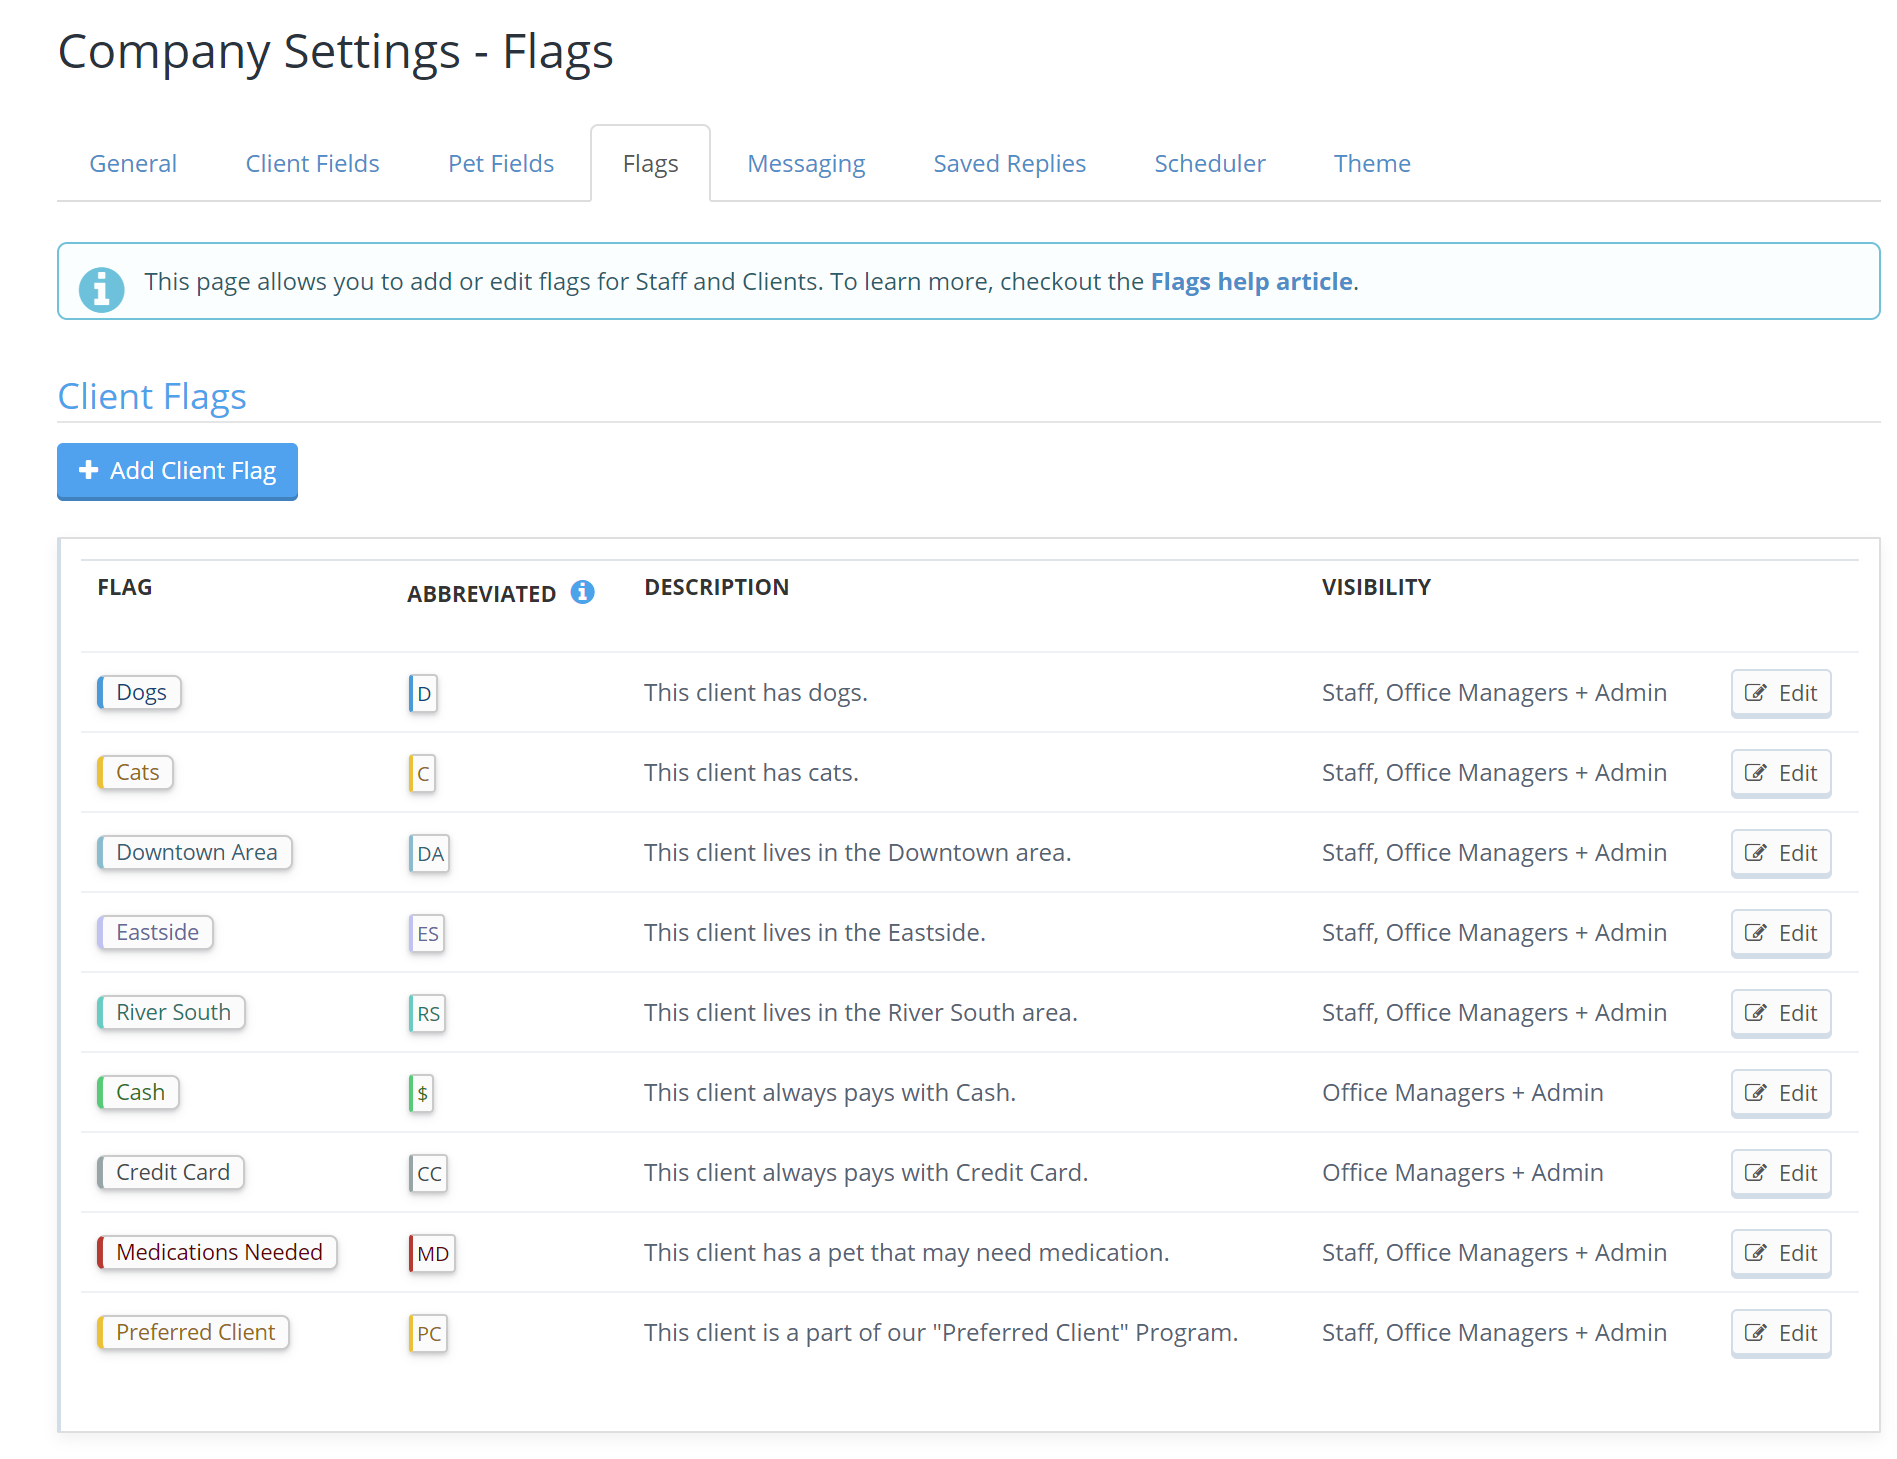 Client Flags in Company Settings